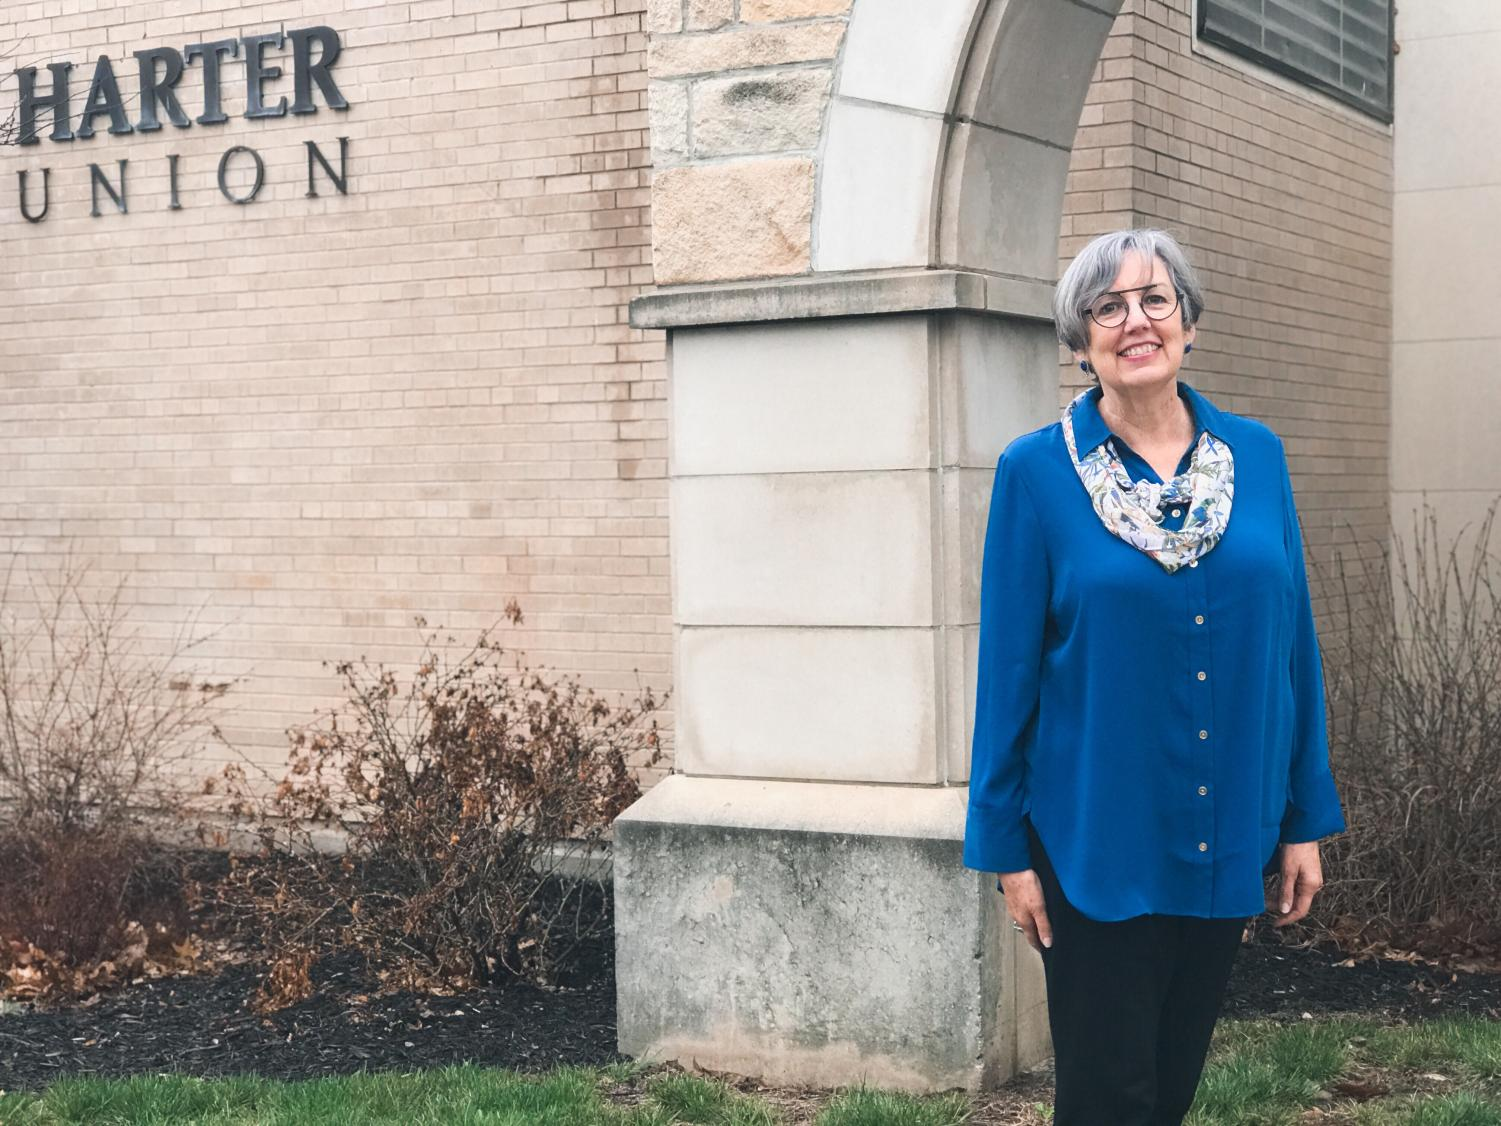 Director of Career Services Susan Wade is set to retire from Baker's Baldwin City campus in late June. Wade will be working part-time at the SPGS campus as the Community Outreach Specialist. Wade also plans to use the extra time for some of her favorite hobbies.